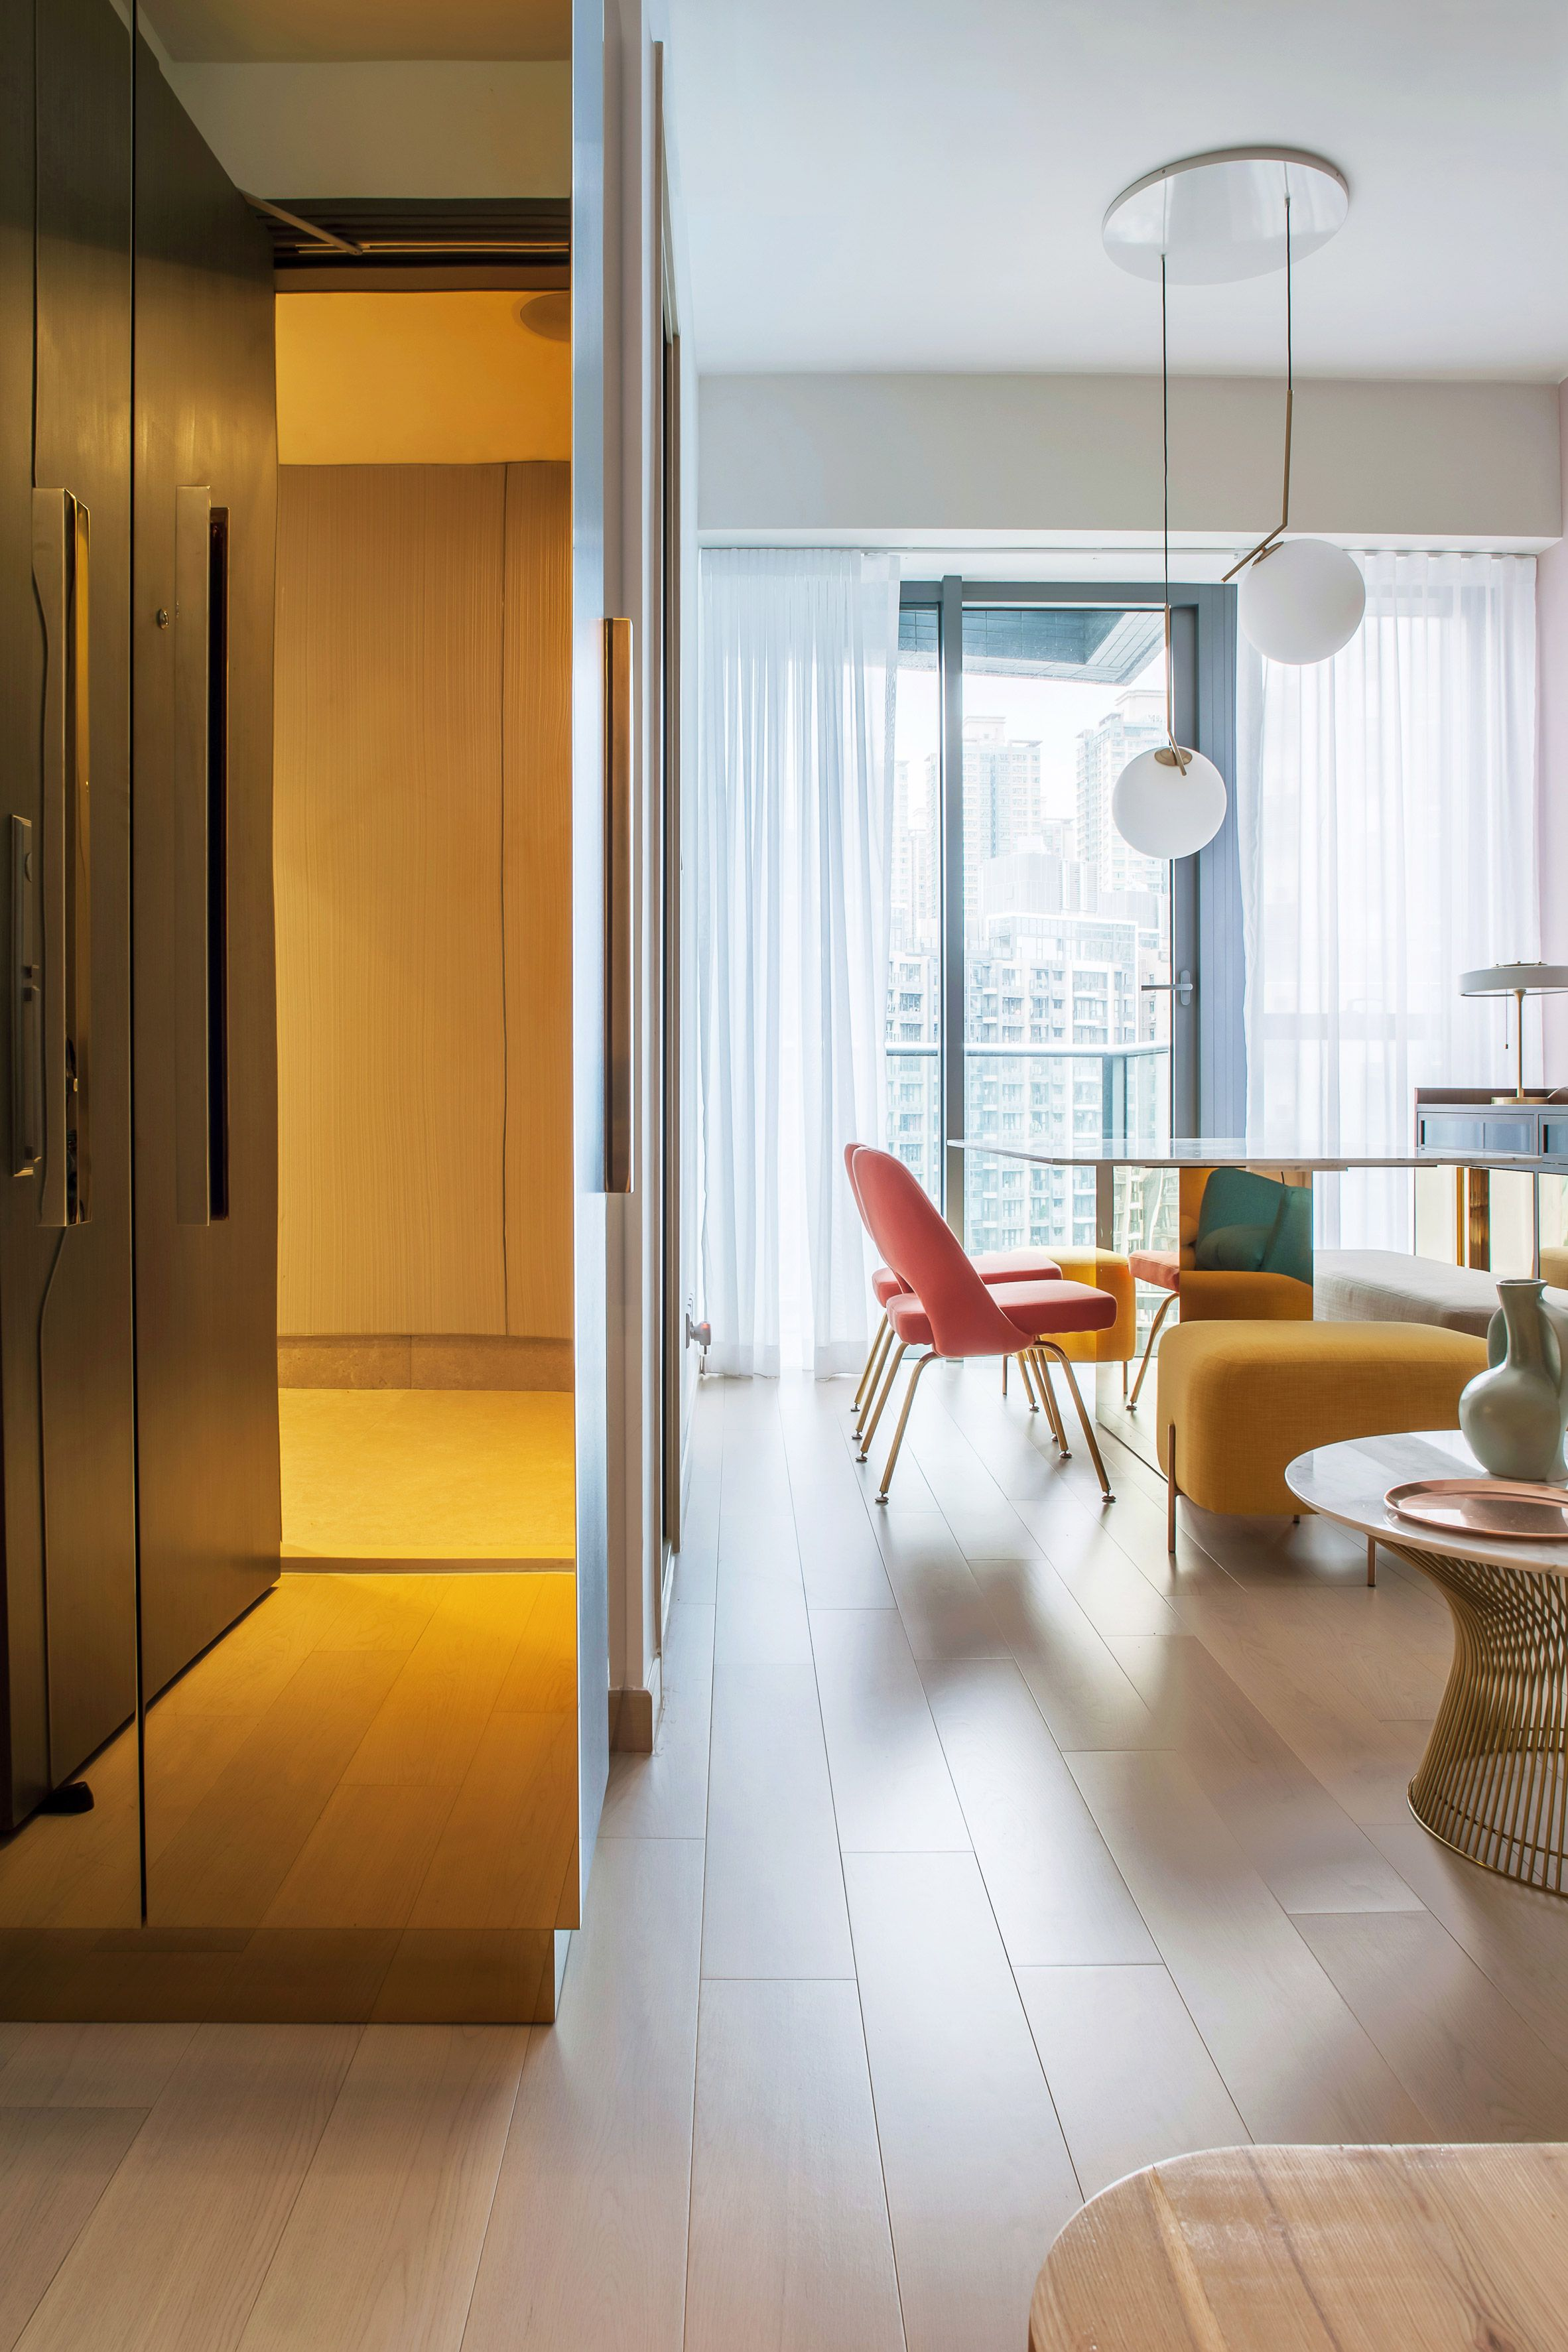 Yellow Turquoise And Coral Pink Furnishings Brighten This Previously Colourless Apartment In Hong Kong Which Has Diseno De Interiores Disenos De Unas Hogar